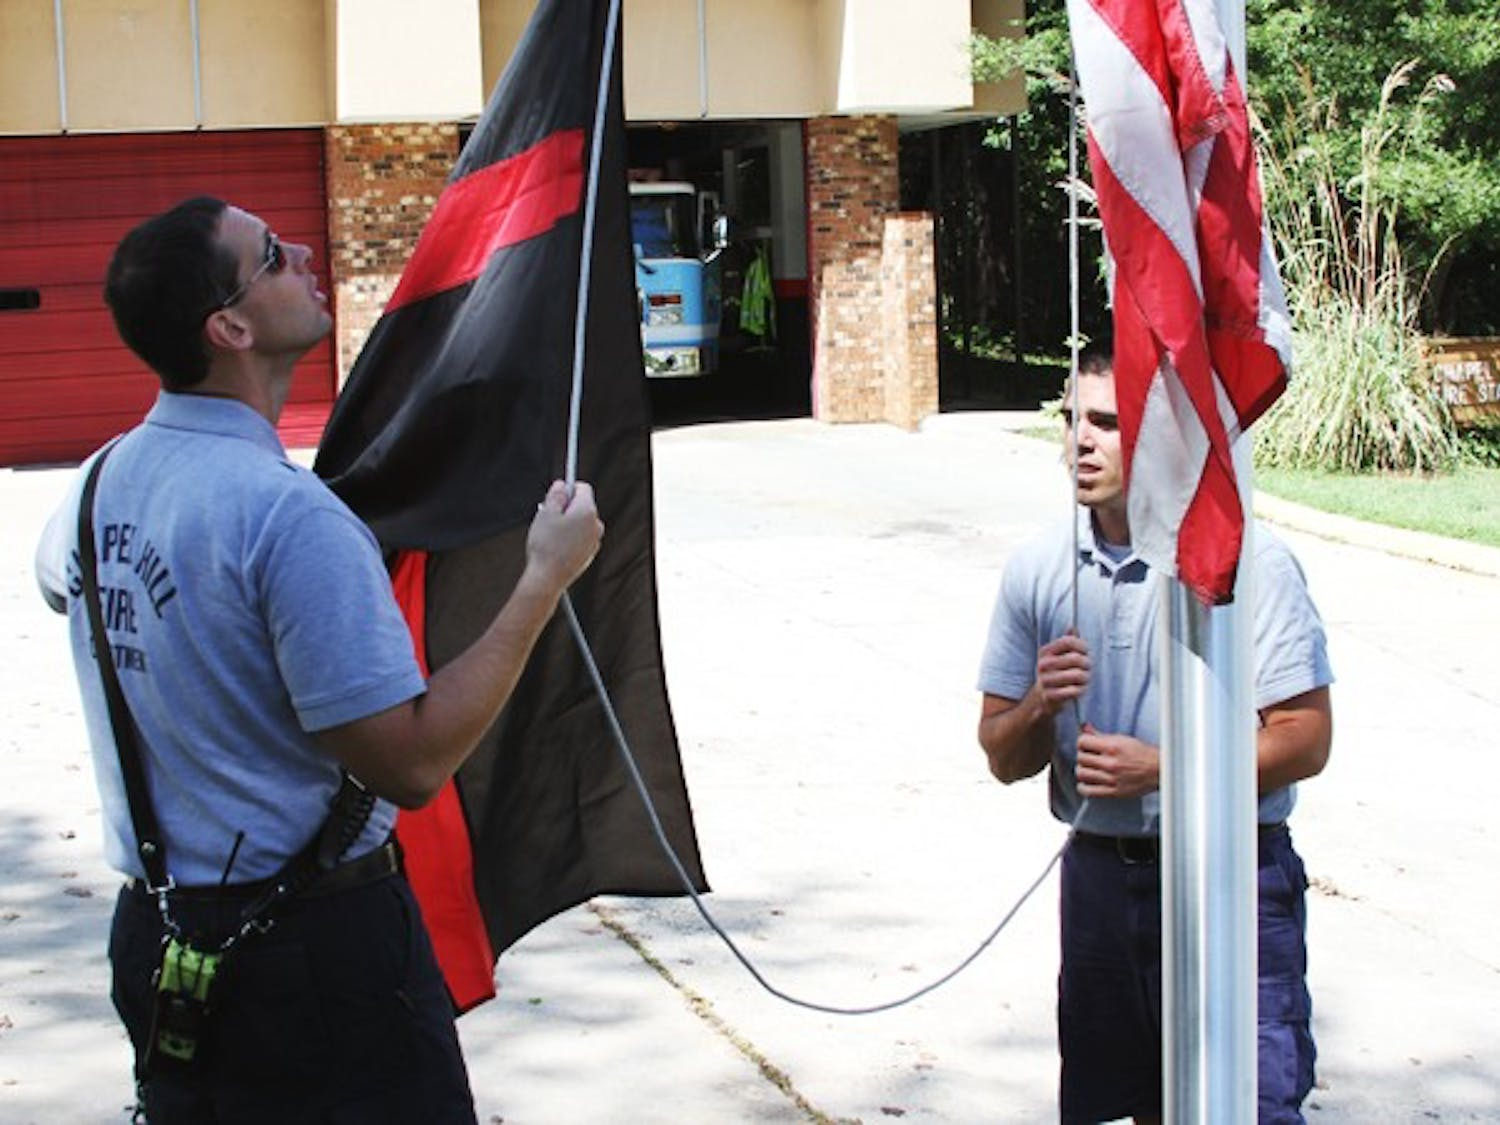 Chapel Hill fire department workers John Wellons (left) of Durham and Michael Crabtree (right) of Whitsett raise the fallen firefighters flag.